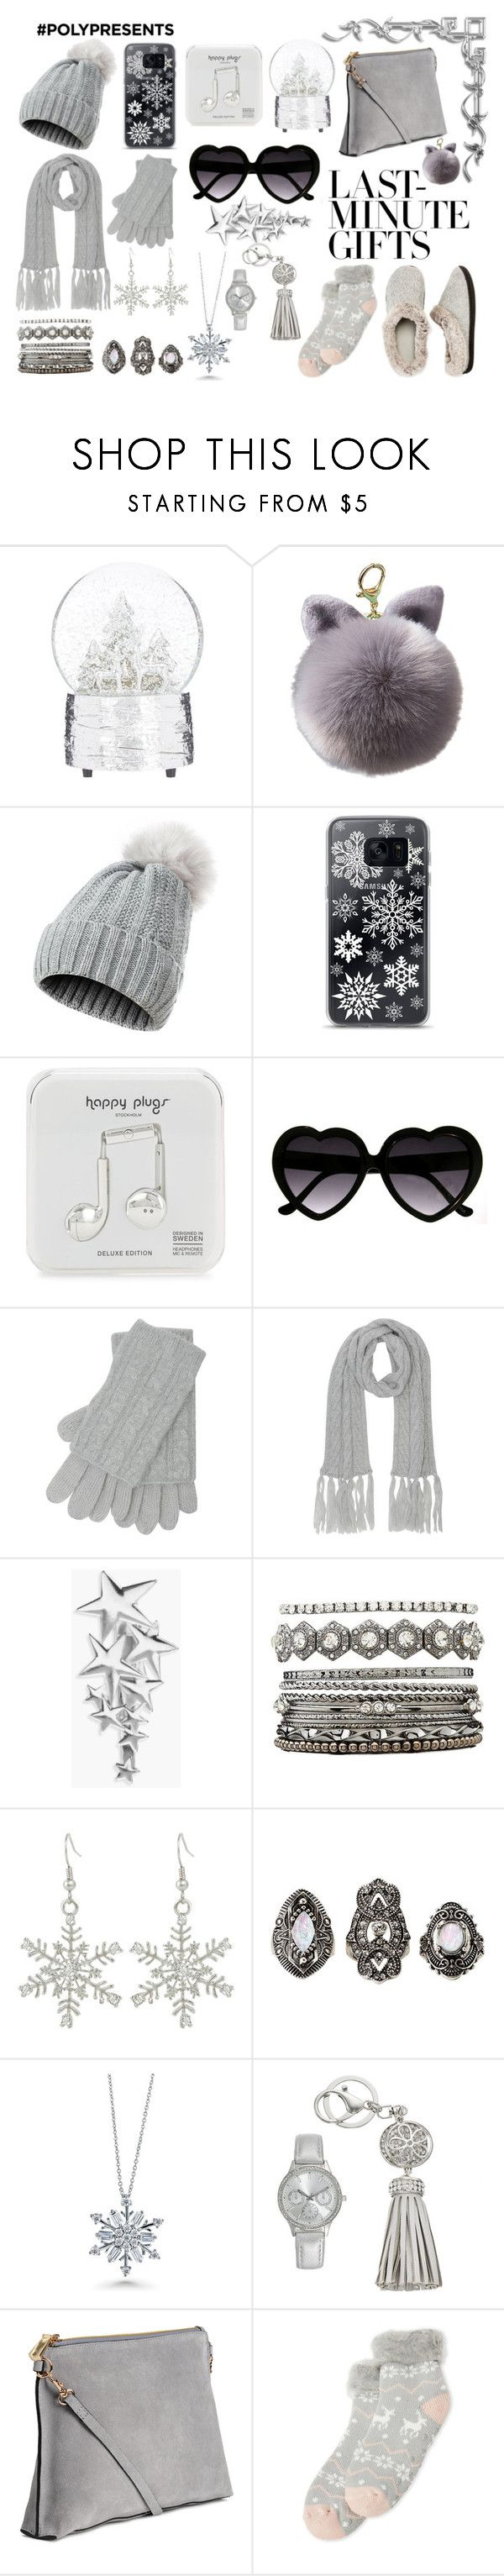 """#PolyPresents: Last-Minute Gifts"" by lioness006 ❤ liked on Polyvore featuring Samsung, Happy Plugs, M&Co, Boohoo, Charlotte Russe, BERRICLE, H&M, Capelli New York, Dearfoams and Last"